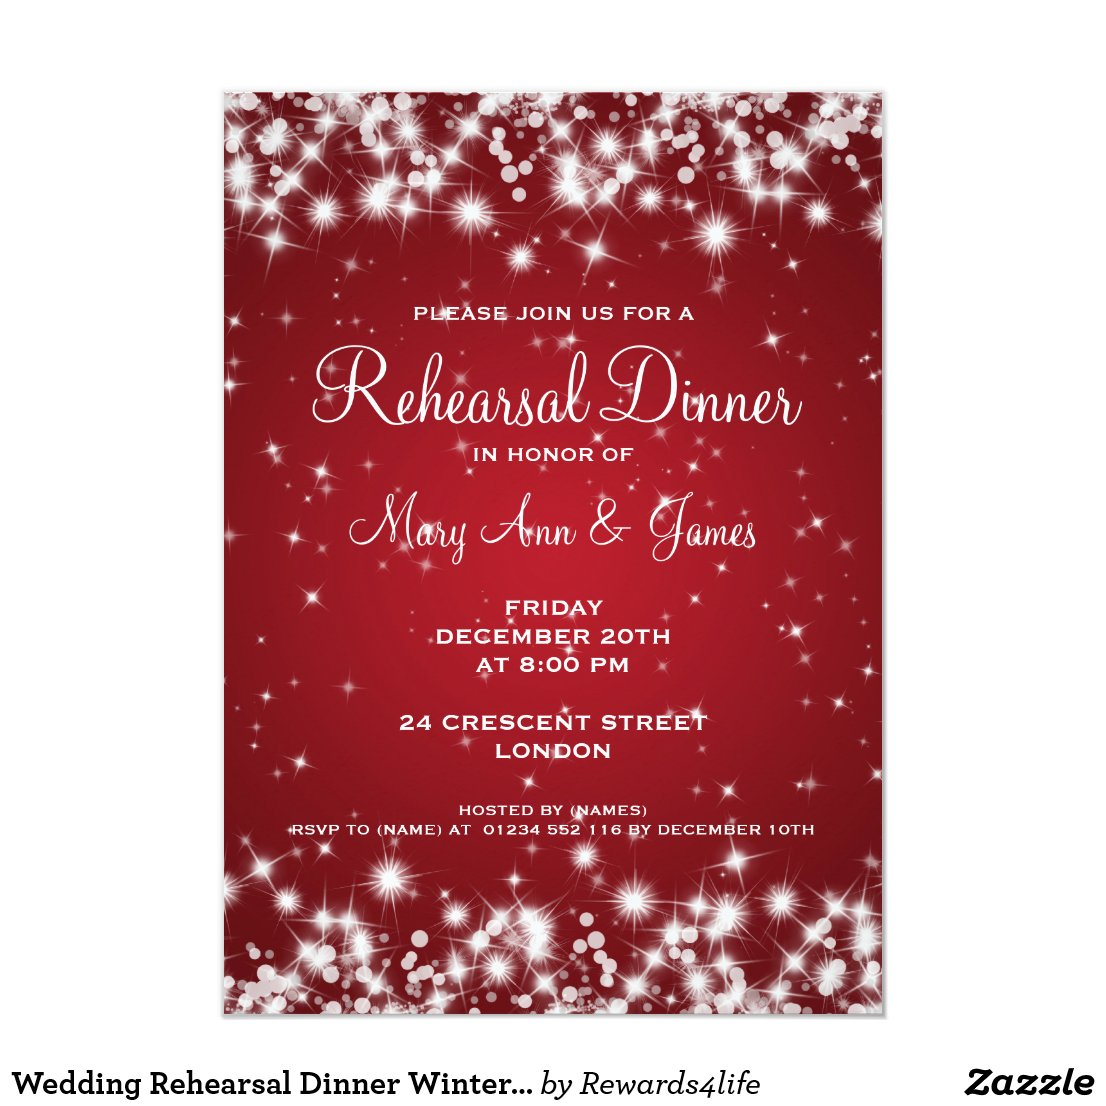 Wedding Rehearsal Dinner Winter Sparkle Red Invitation